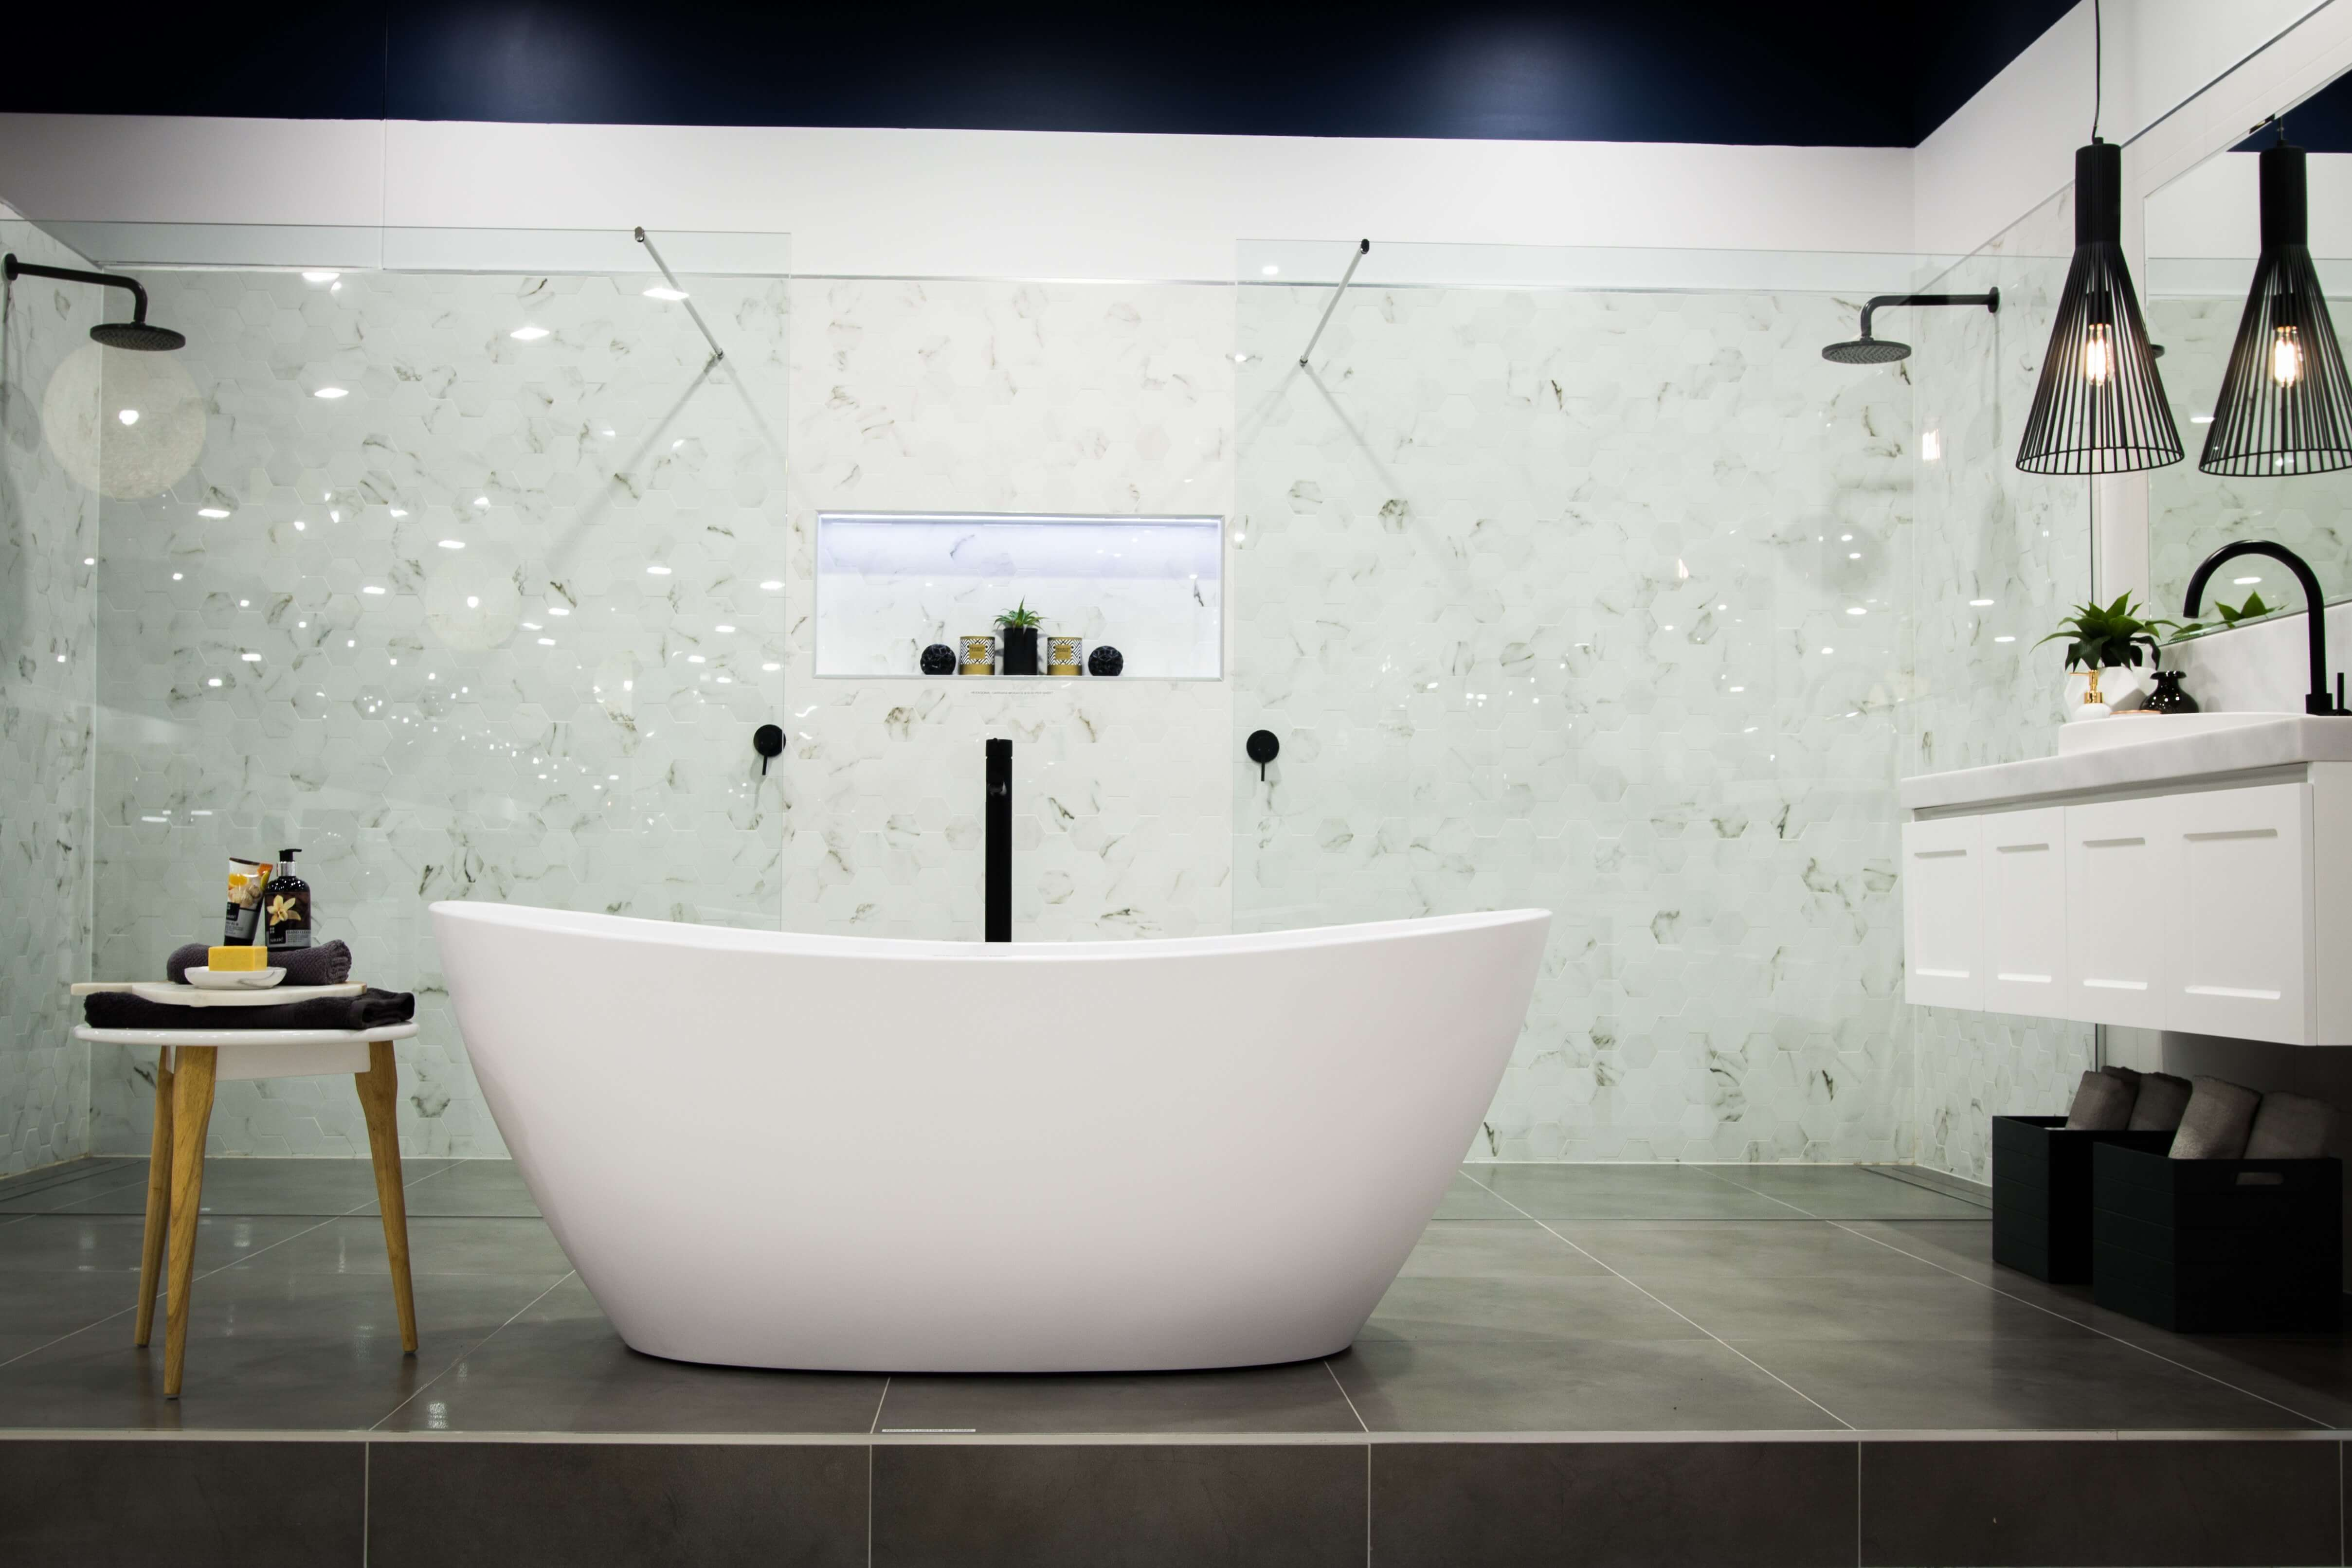 Bathroom Accessories Online Australia Bathroom Products Supplies Melbourne New Bathrooms Melbourne